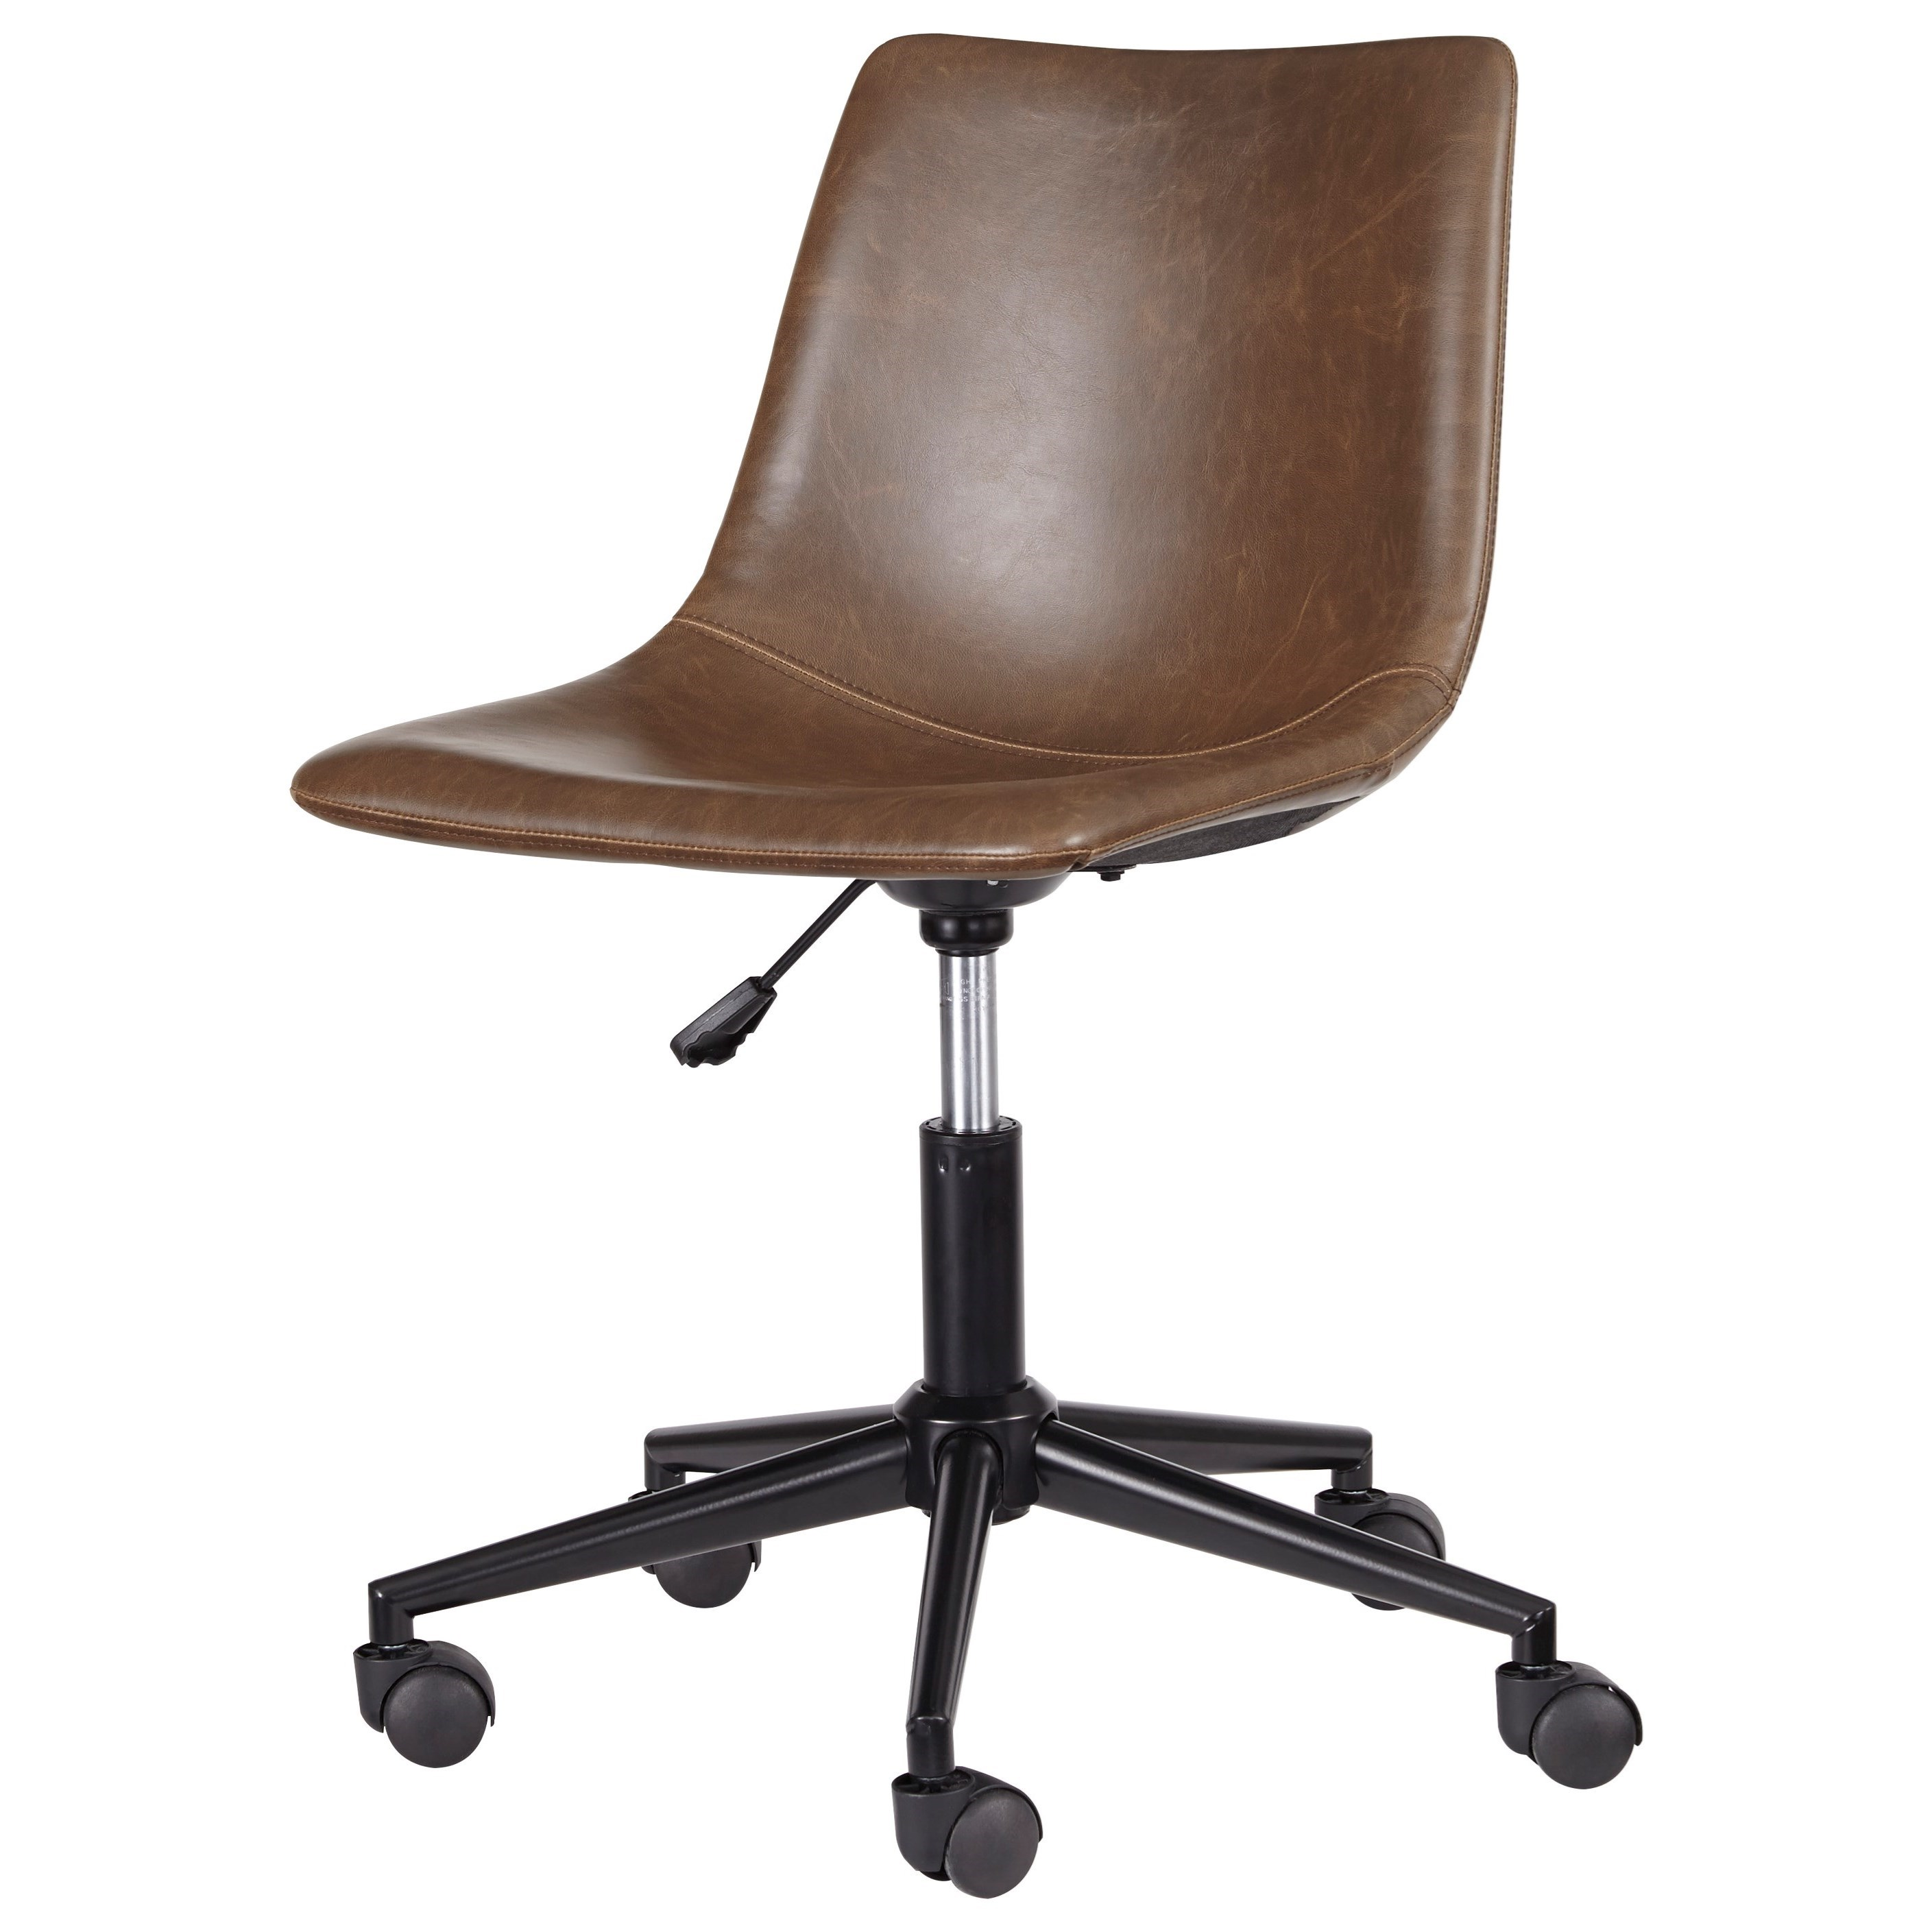 Desk Seat Office Chair Program Home Office Swivel Desk Chair In Brown Faux Leather By Signature Design By Ashley At Colder S Furniture And Appliance